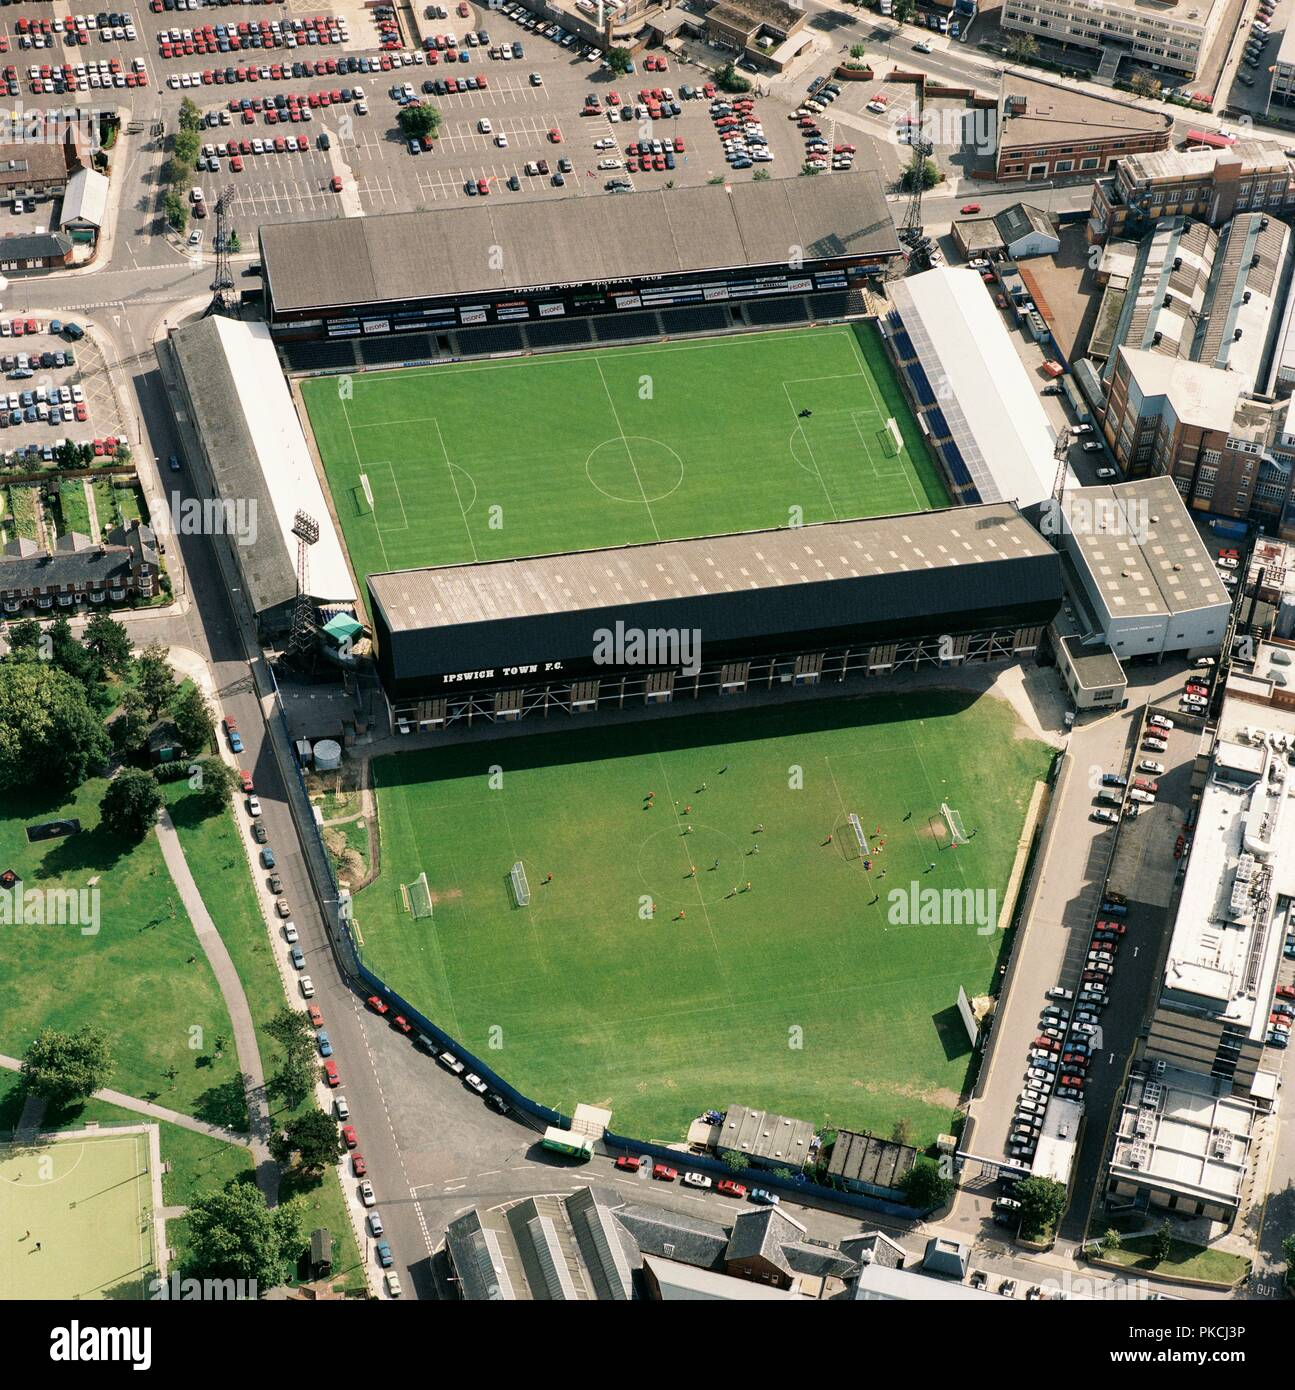 Portman Road, Ipswich, Suffolk, 1992. Aerial view of the home of Ipswich Town Football Club. The Tractor Boys finished the season as divisional champions and started the 1992-1993 season in the newly formed Premier League. - Stock Image